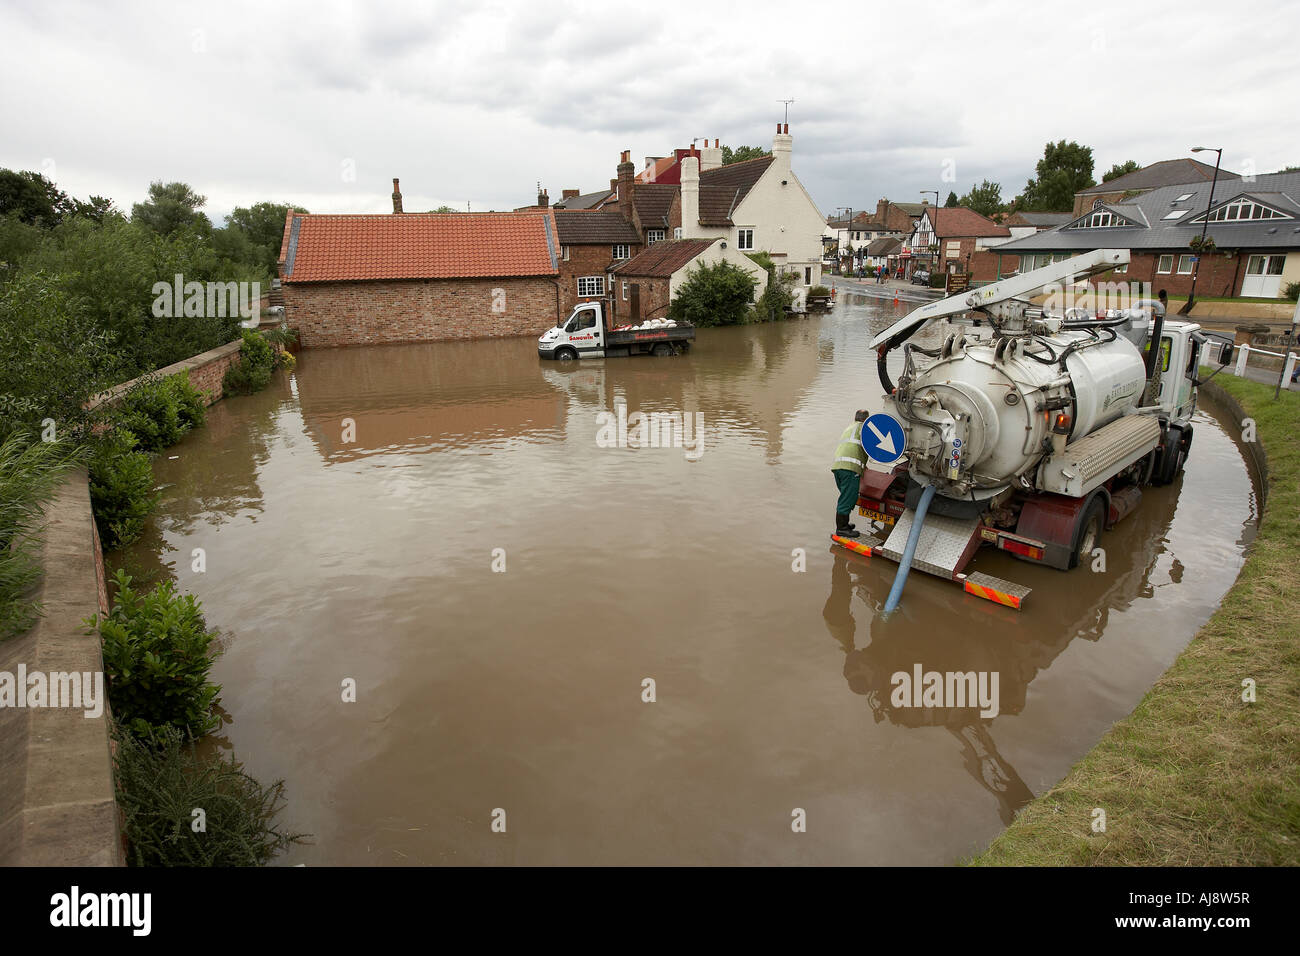 Vehicles pumping out flood water in Stamford Bridge East Yorkshire UK June 2007 - Stock Image